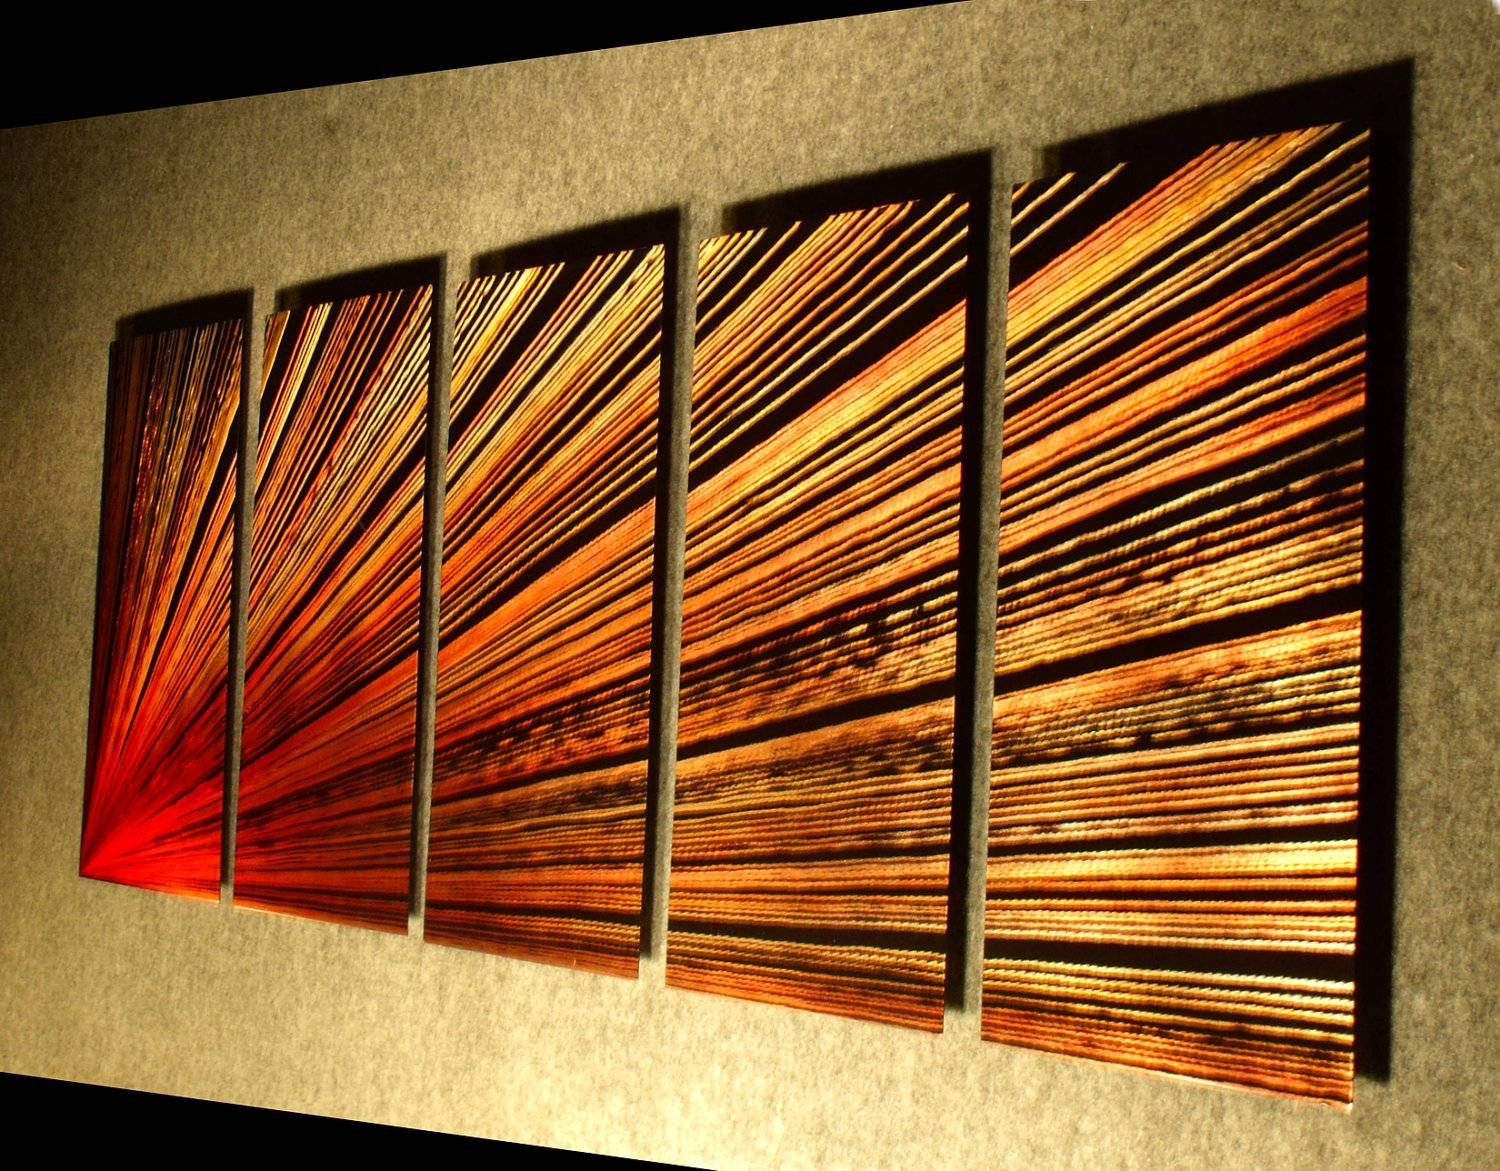 Metal Wall Art Sculpture Contemporary Abstract Painting Metal Intended For Latest Painting Metal Wall Art (View 10 of 20)